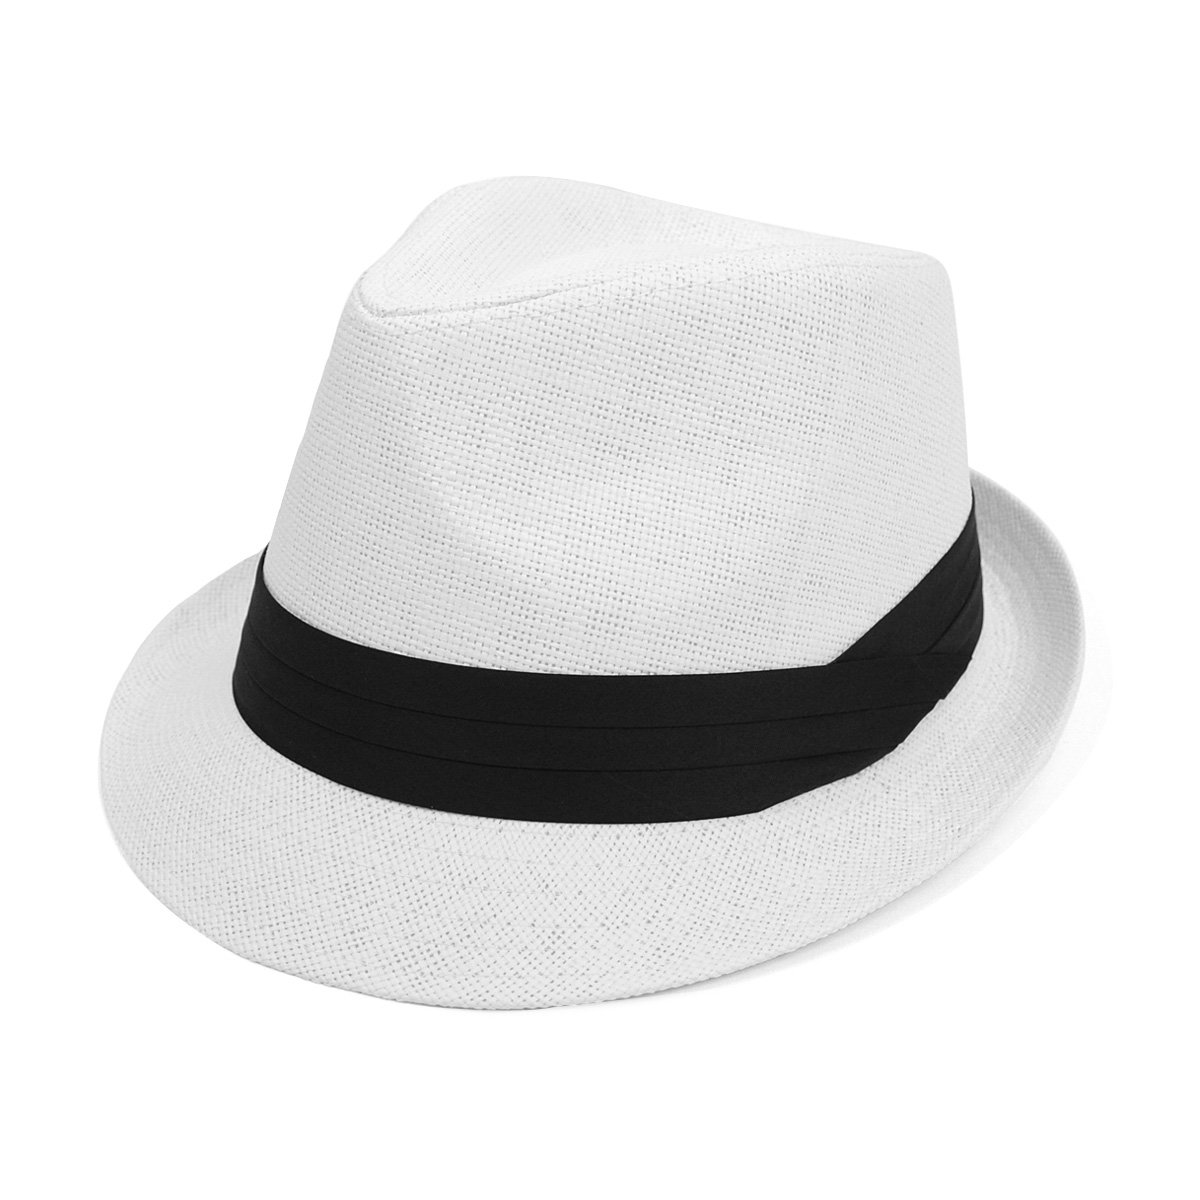 cc72e6540407d West End Men & Women Summer Fedora Hat with Black Band: Amazon.ca: Clothing  & Accessories